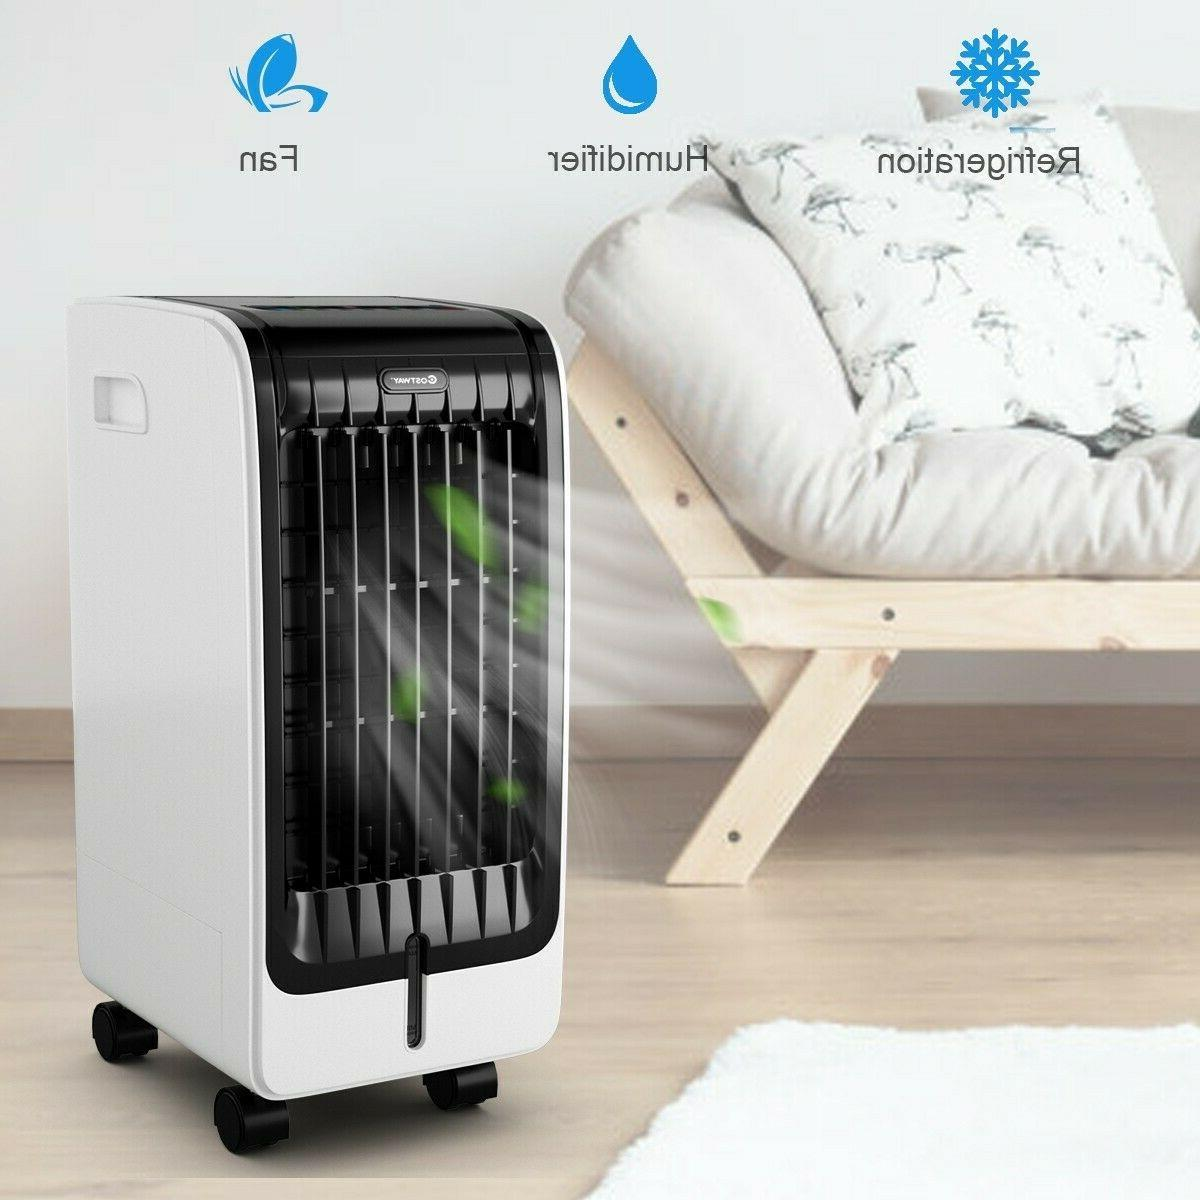 Evaporative Cooler Home with